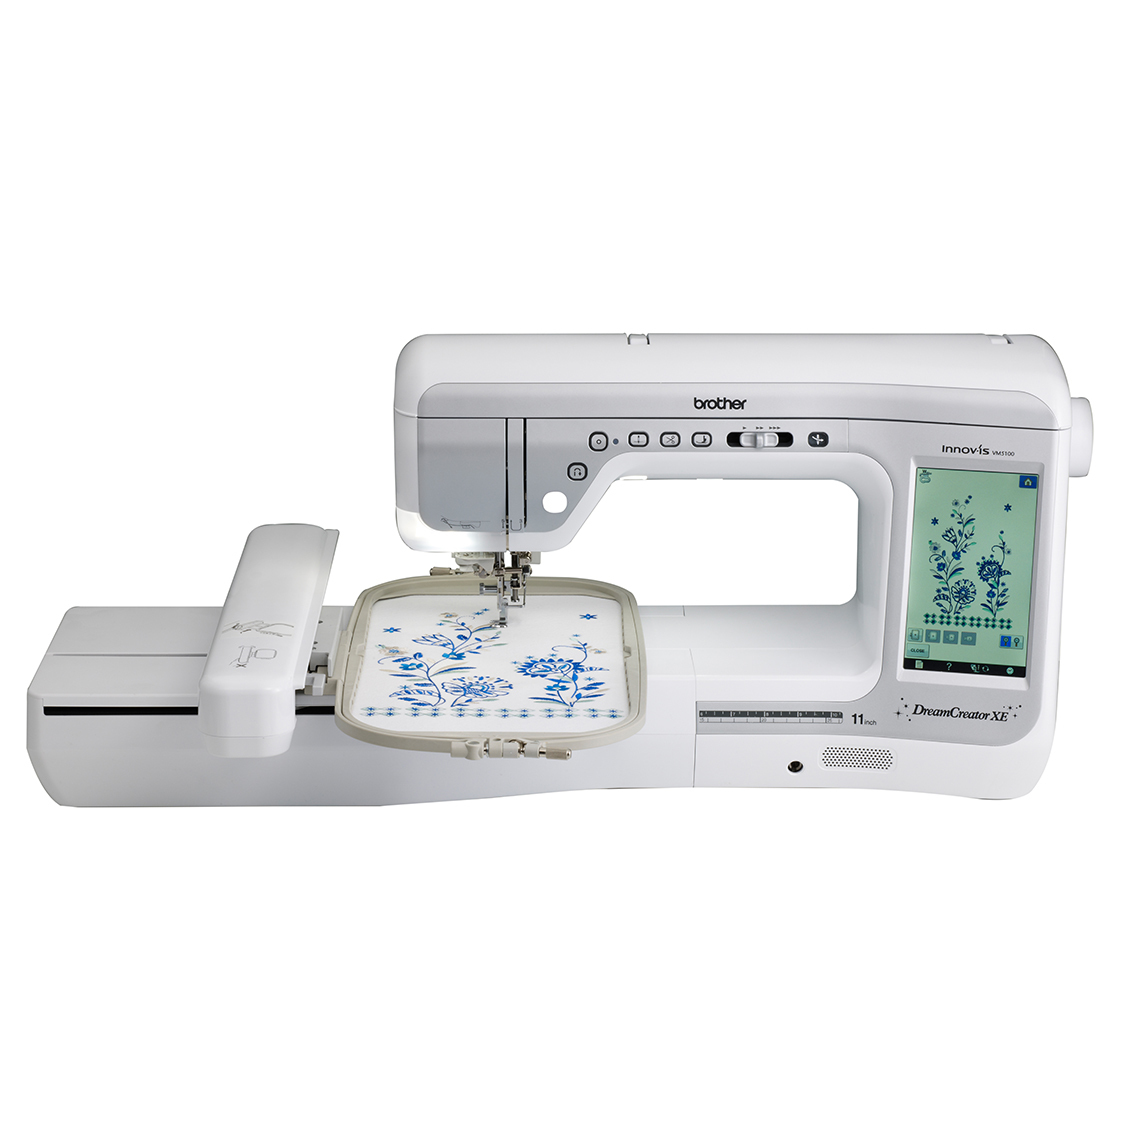 Cheap Sewing Machines Australia Brother Dreamcreator Xe Vm5100 Embroidery Sewing Machine